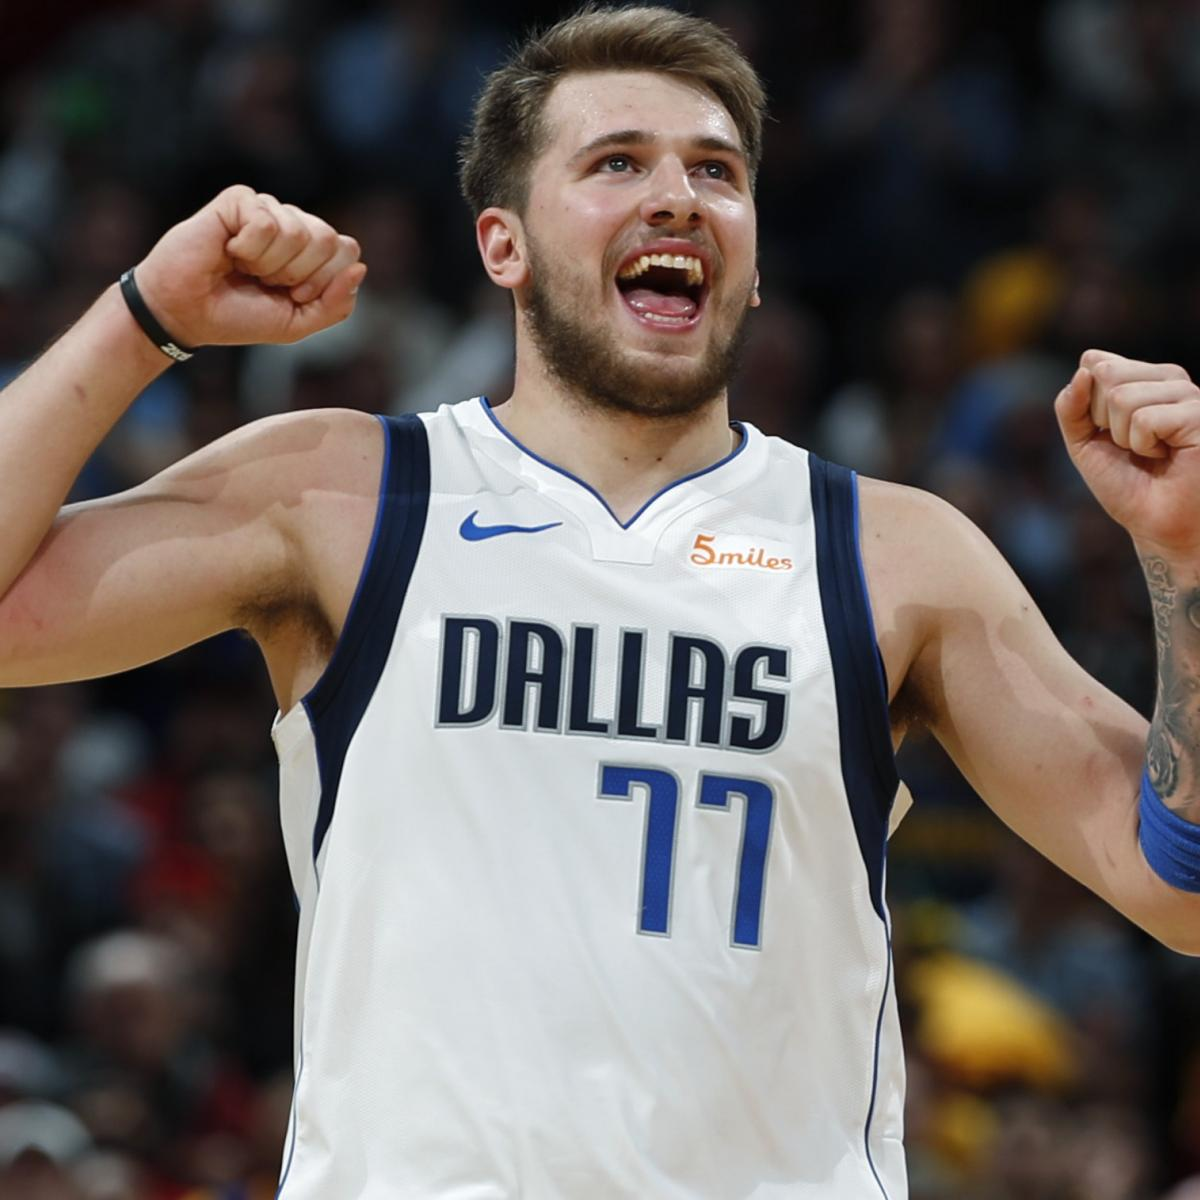 Nba Rookie Award Predictions For 2018 19 Season: Luka Doncic Wins 2019 NBA Rookie Of The Year Over Trae